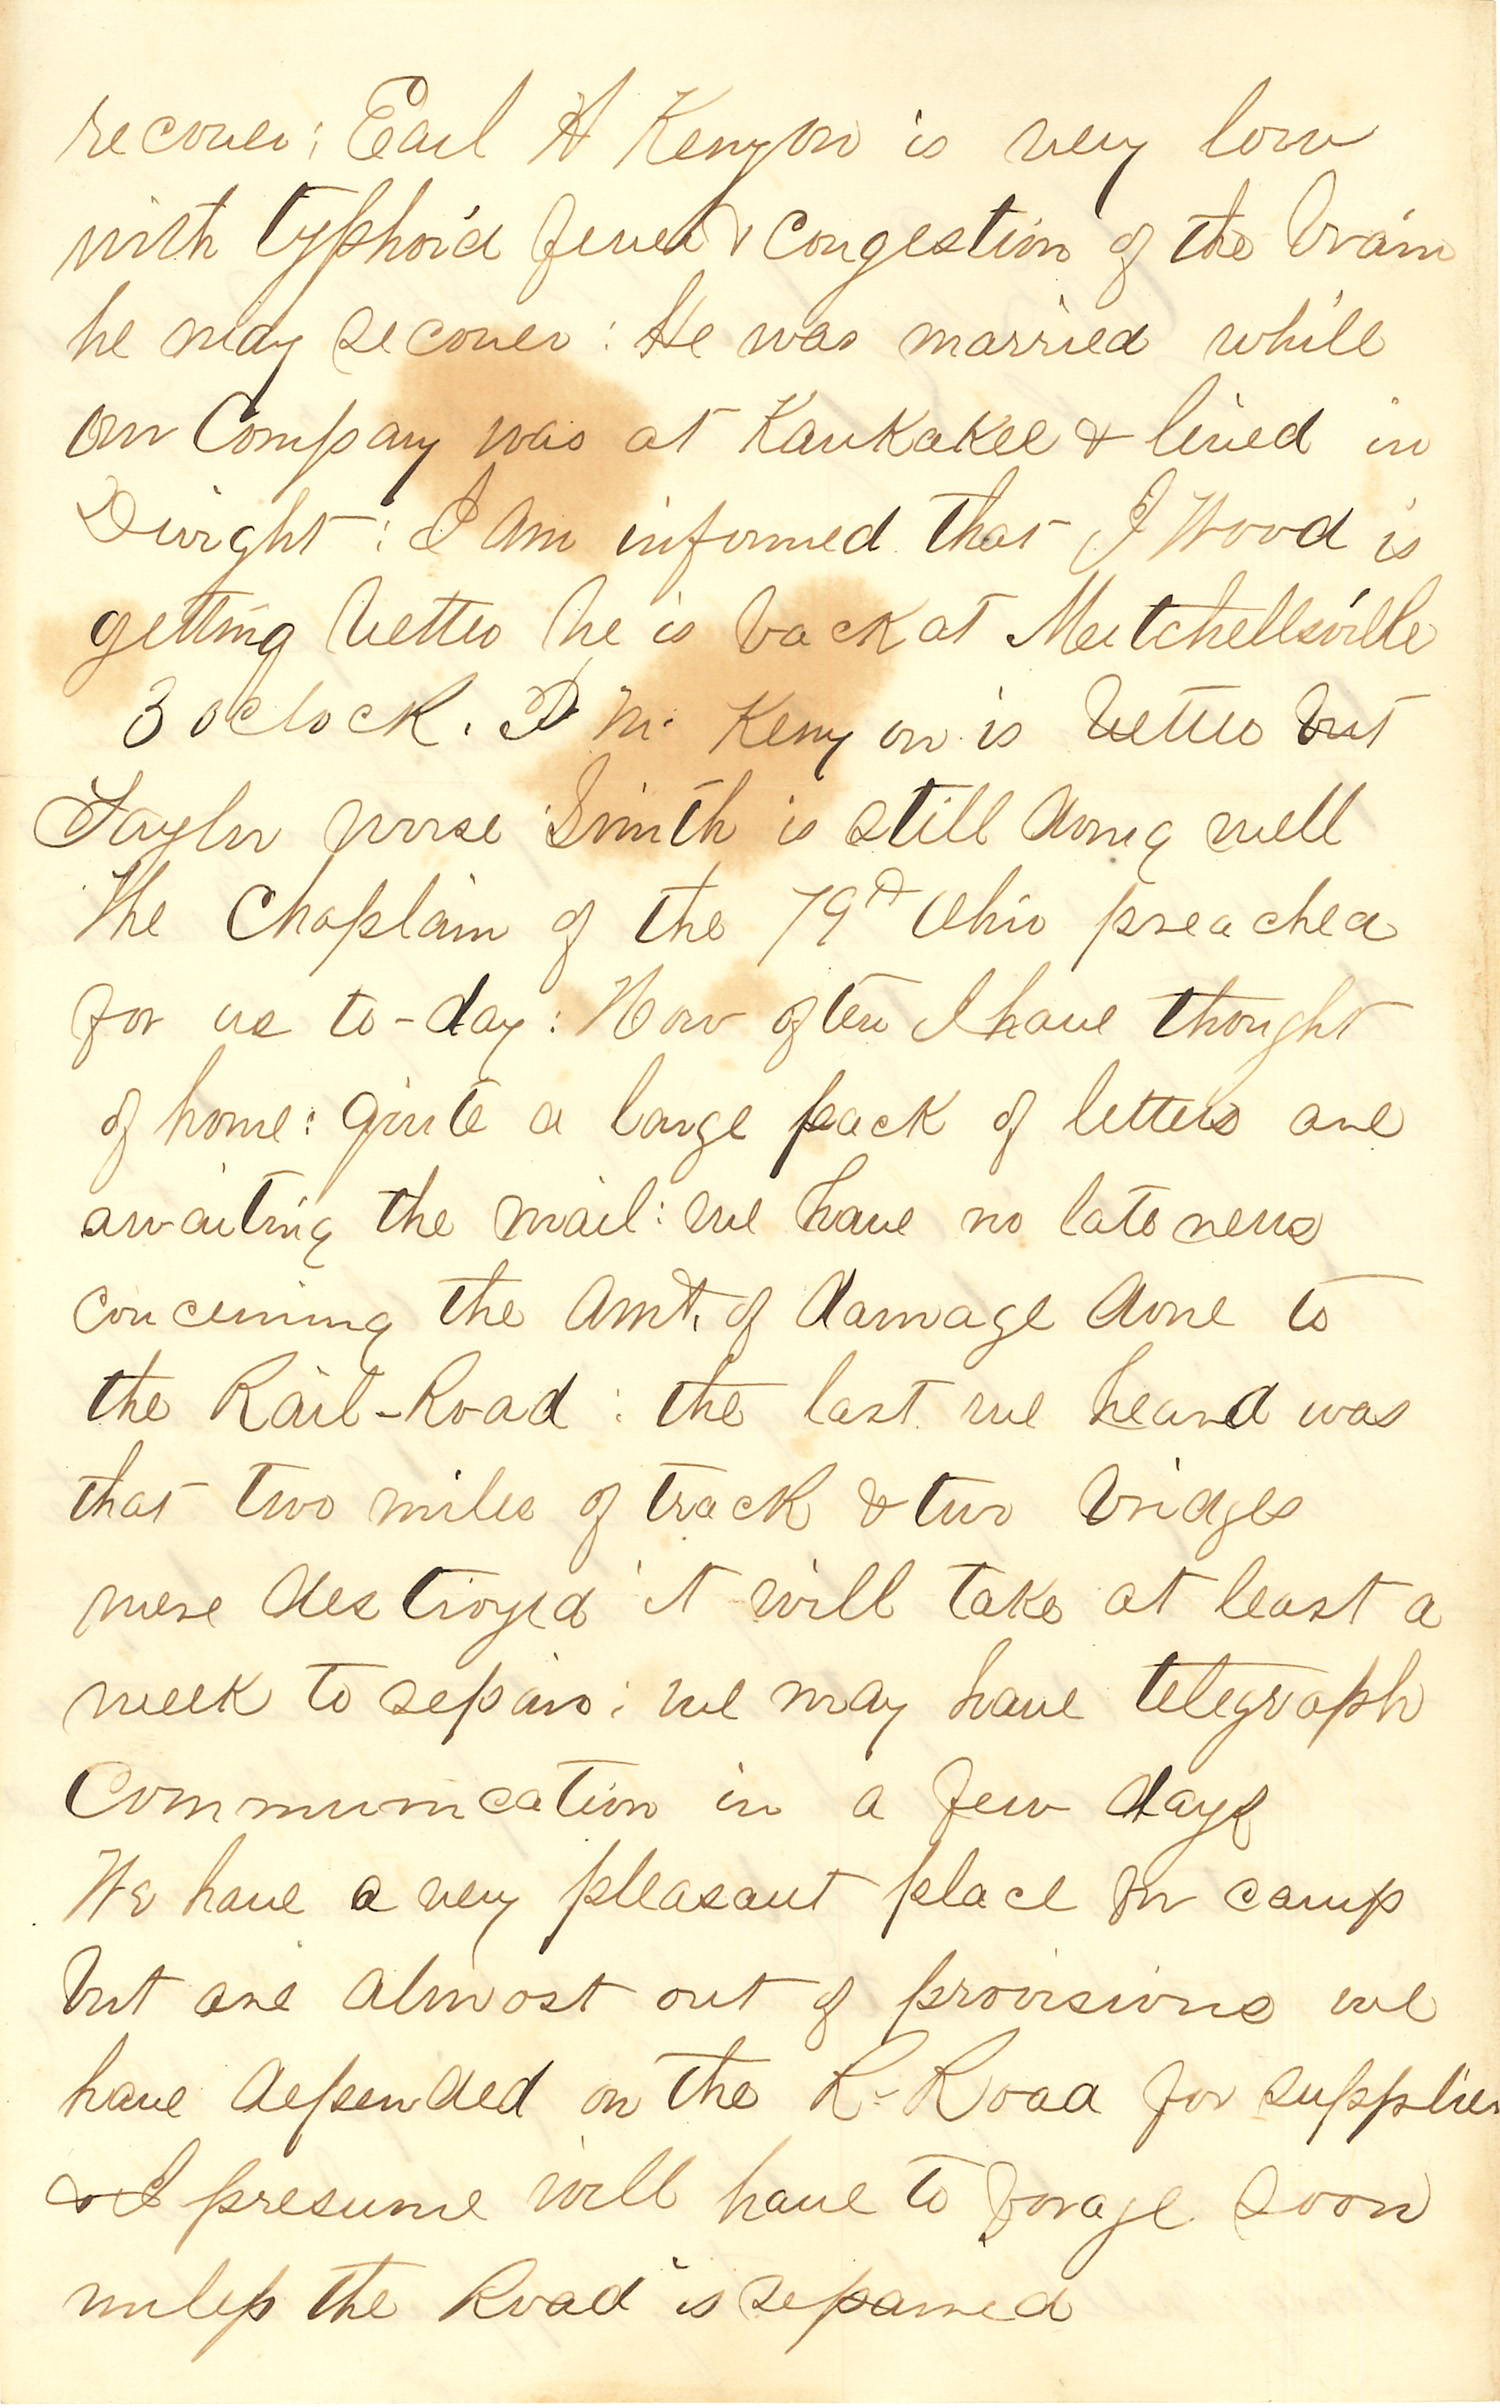 Joseph Culver Letter, December 28, 1862, Page 2